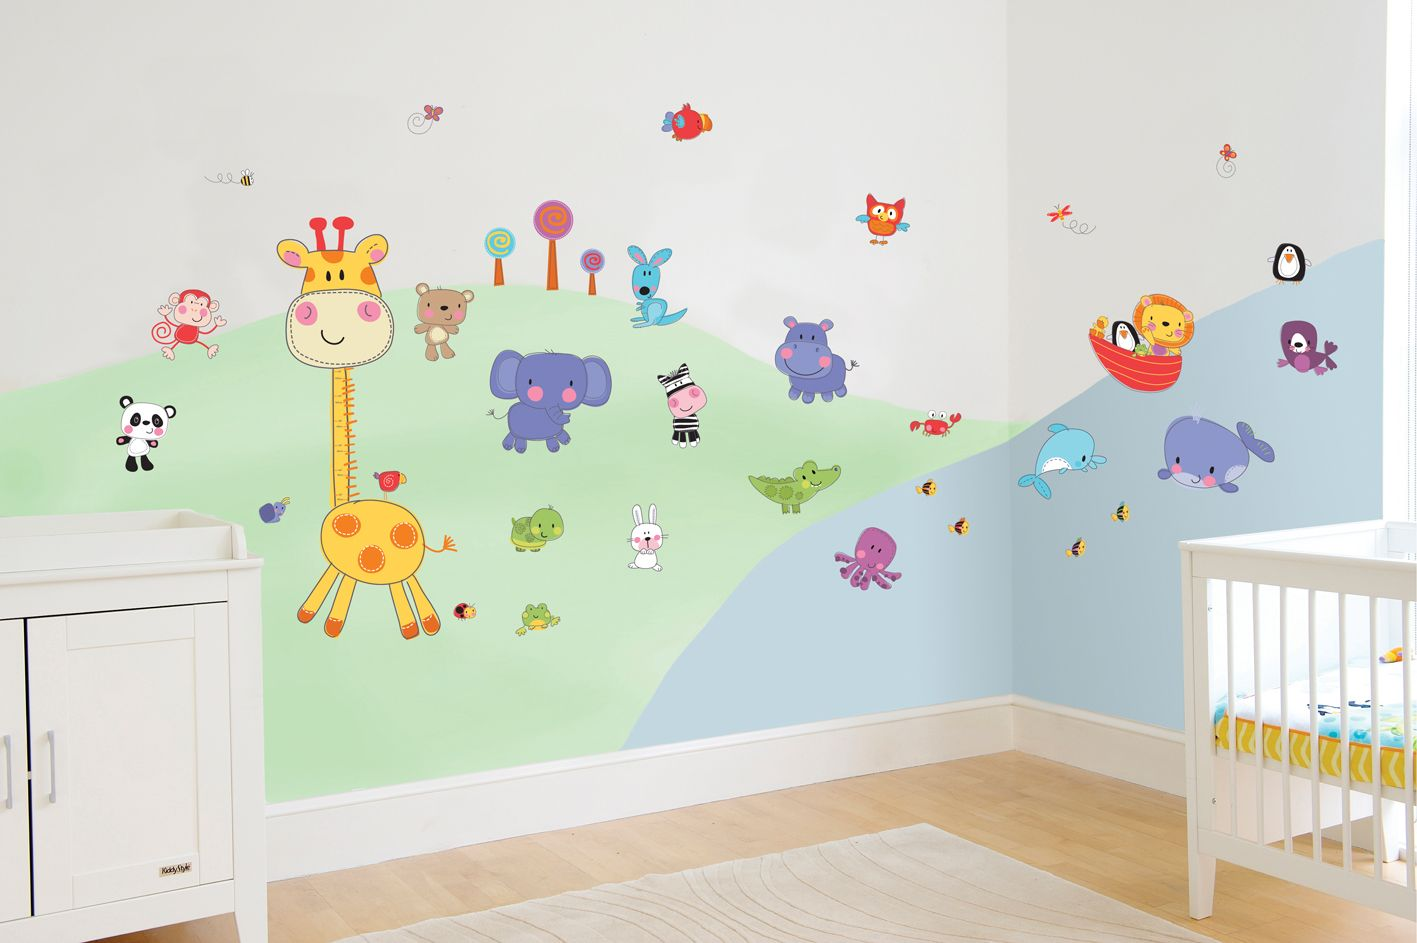 Fisher price nursery wall stickers creative ideas for decorating fisher price nursery wall stickers creative ideas for decorating the nursery by funtosee amipublicfo Images